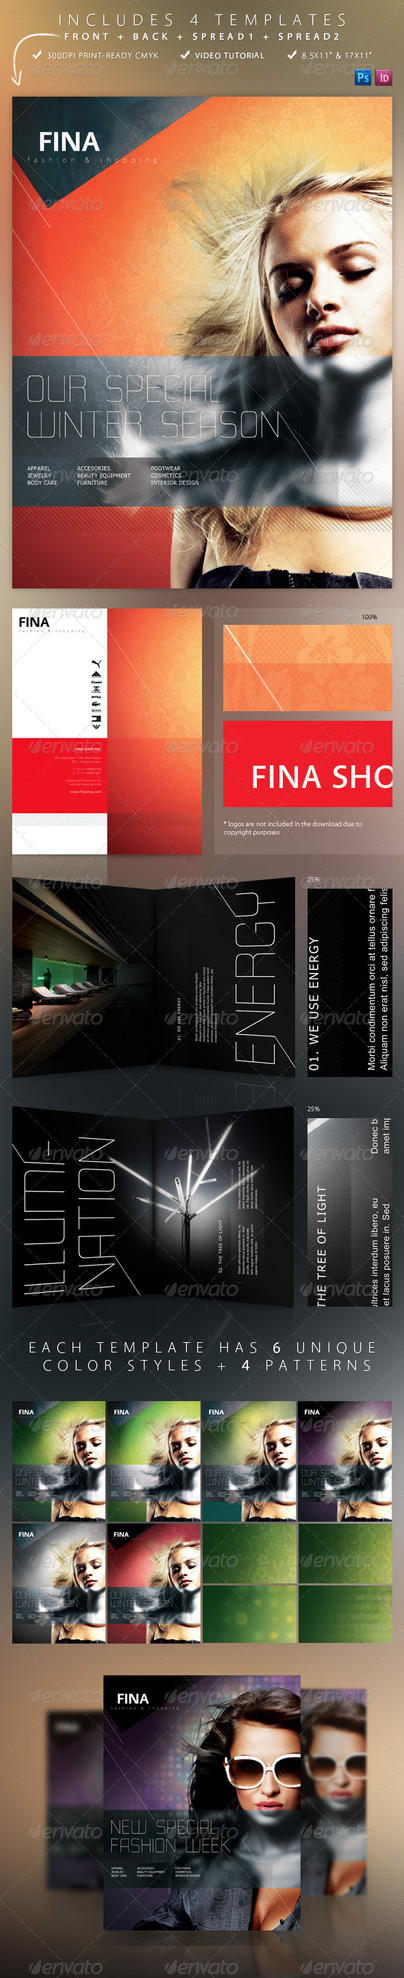 Fina Brochure - Fashion+Shopp. by cr0z3r